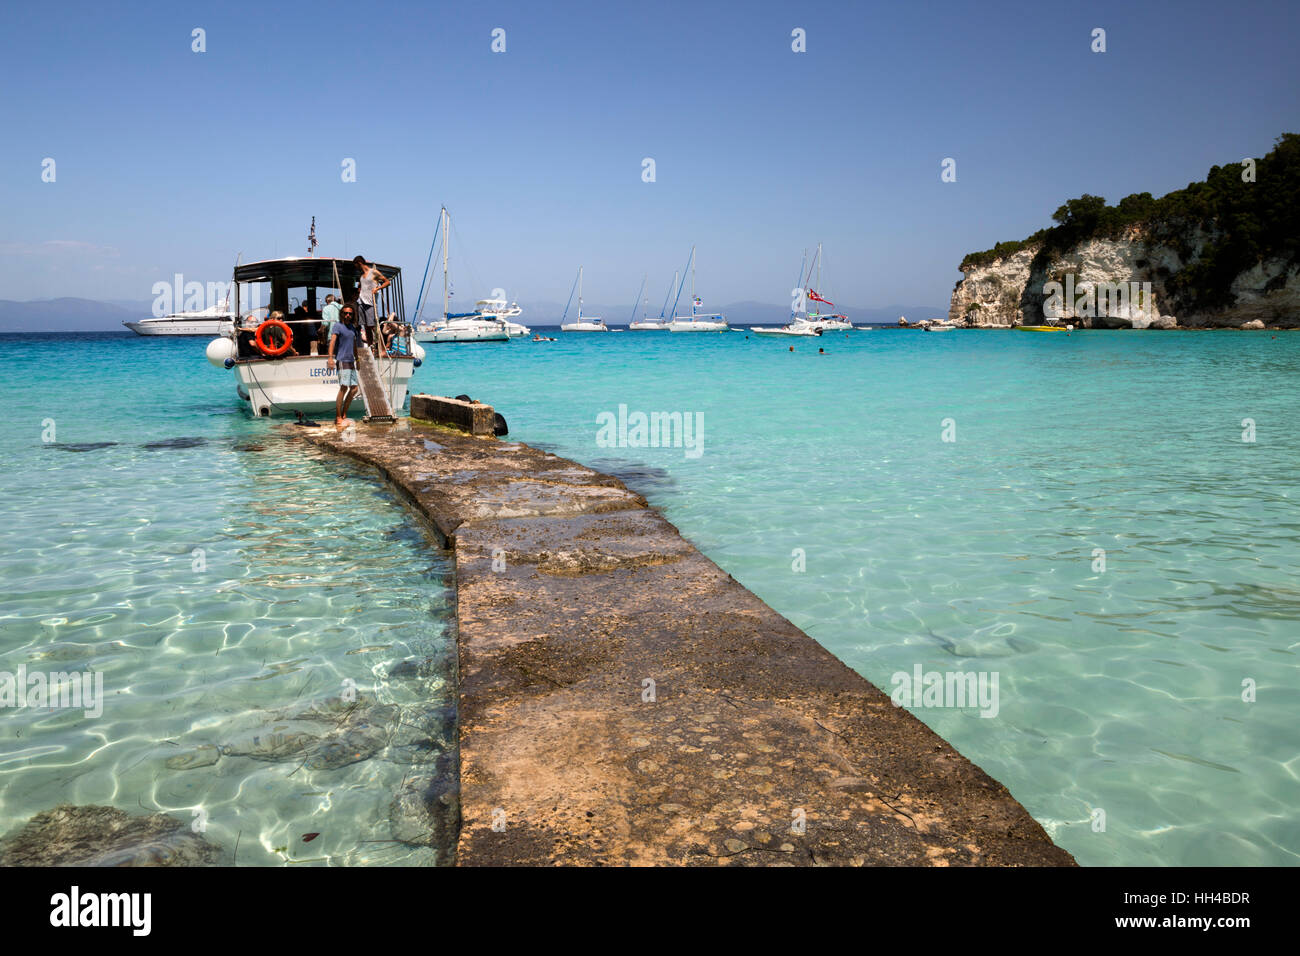 Pier and boat on Voutoumi beach, Antipaxos, Ionian Islands, Greek Islands, Greece, Europe - Stock Image